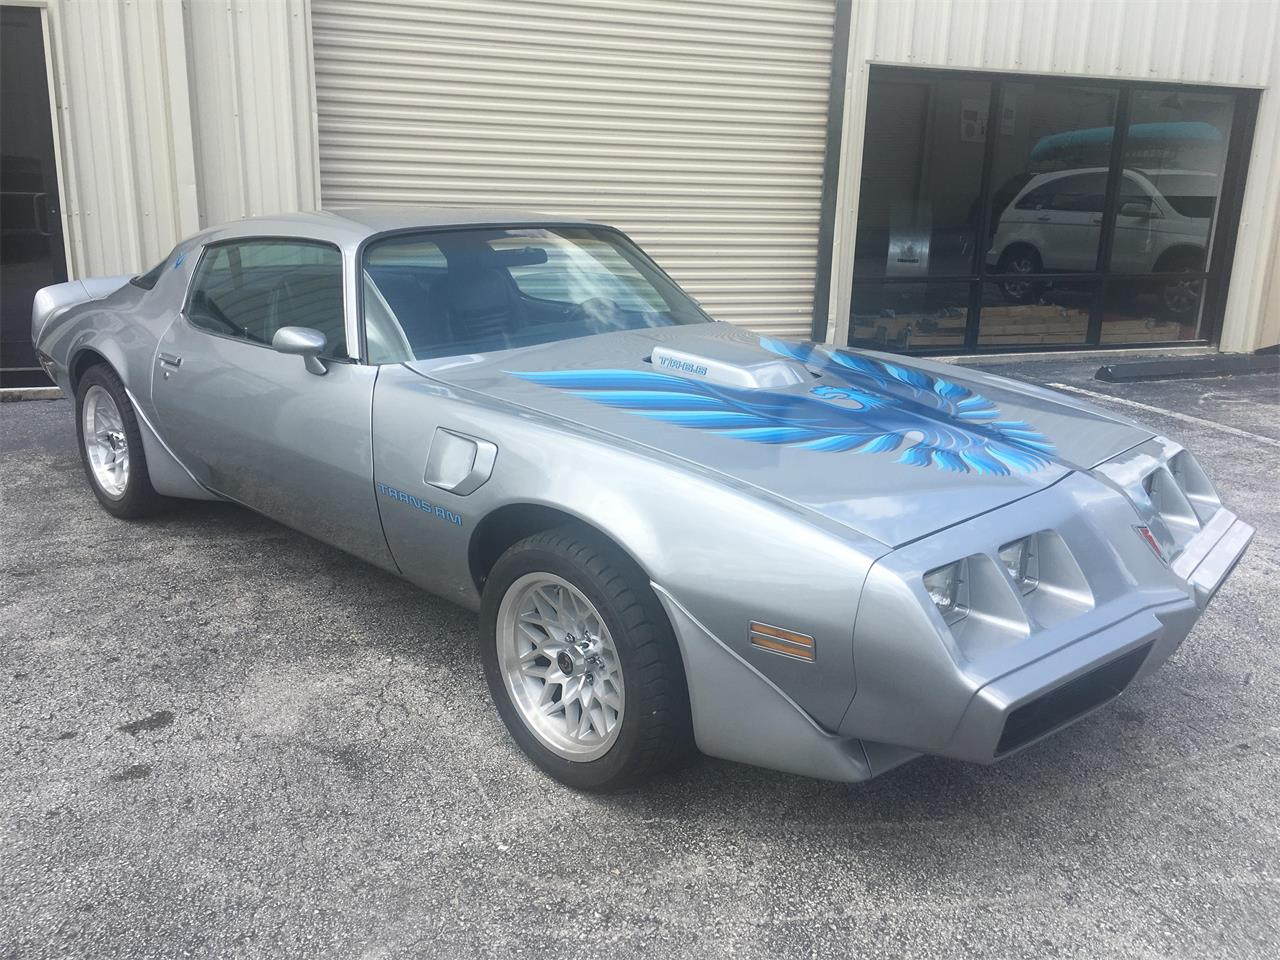 1981 Pontiac Firebird Trans Am for sale in Ponte Verda Beach, FL – photo 4